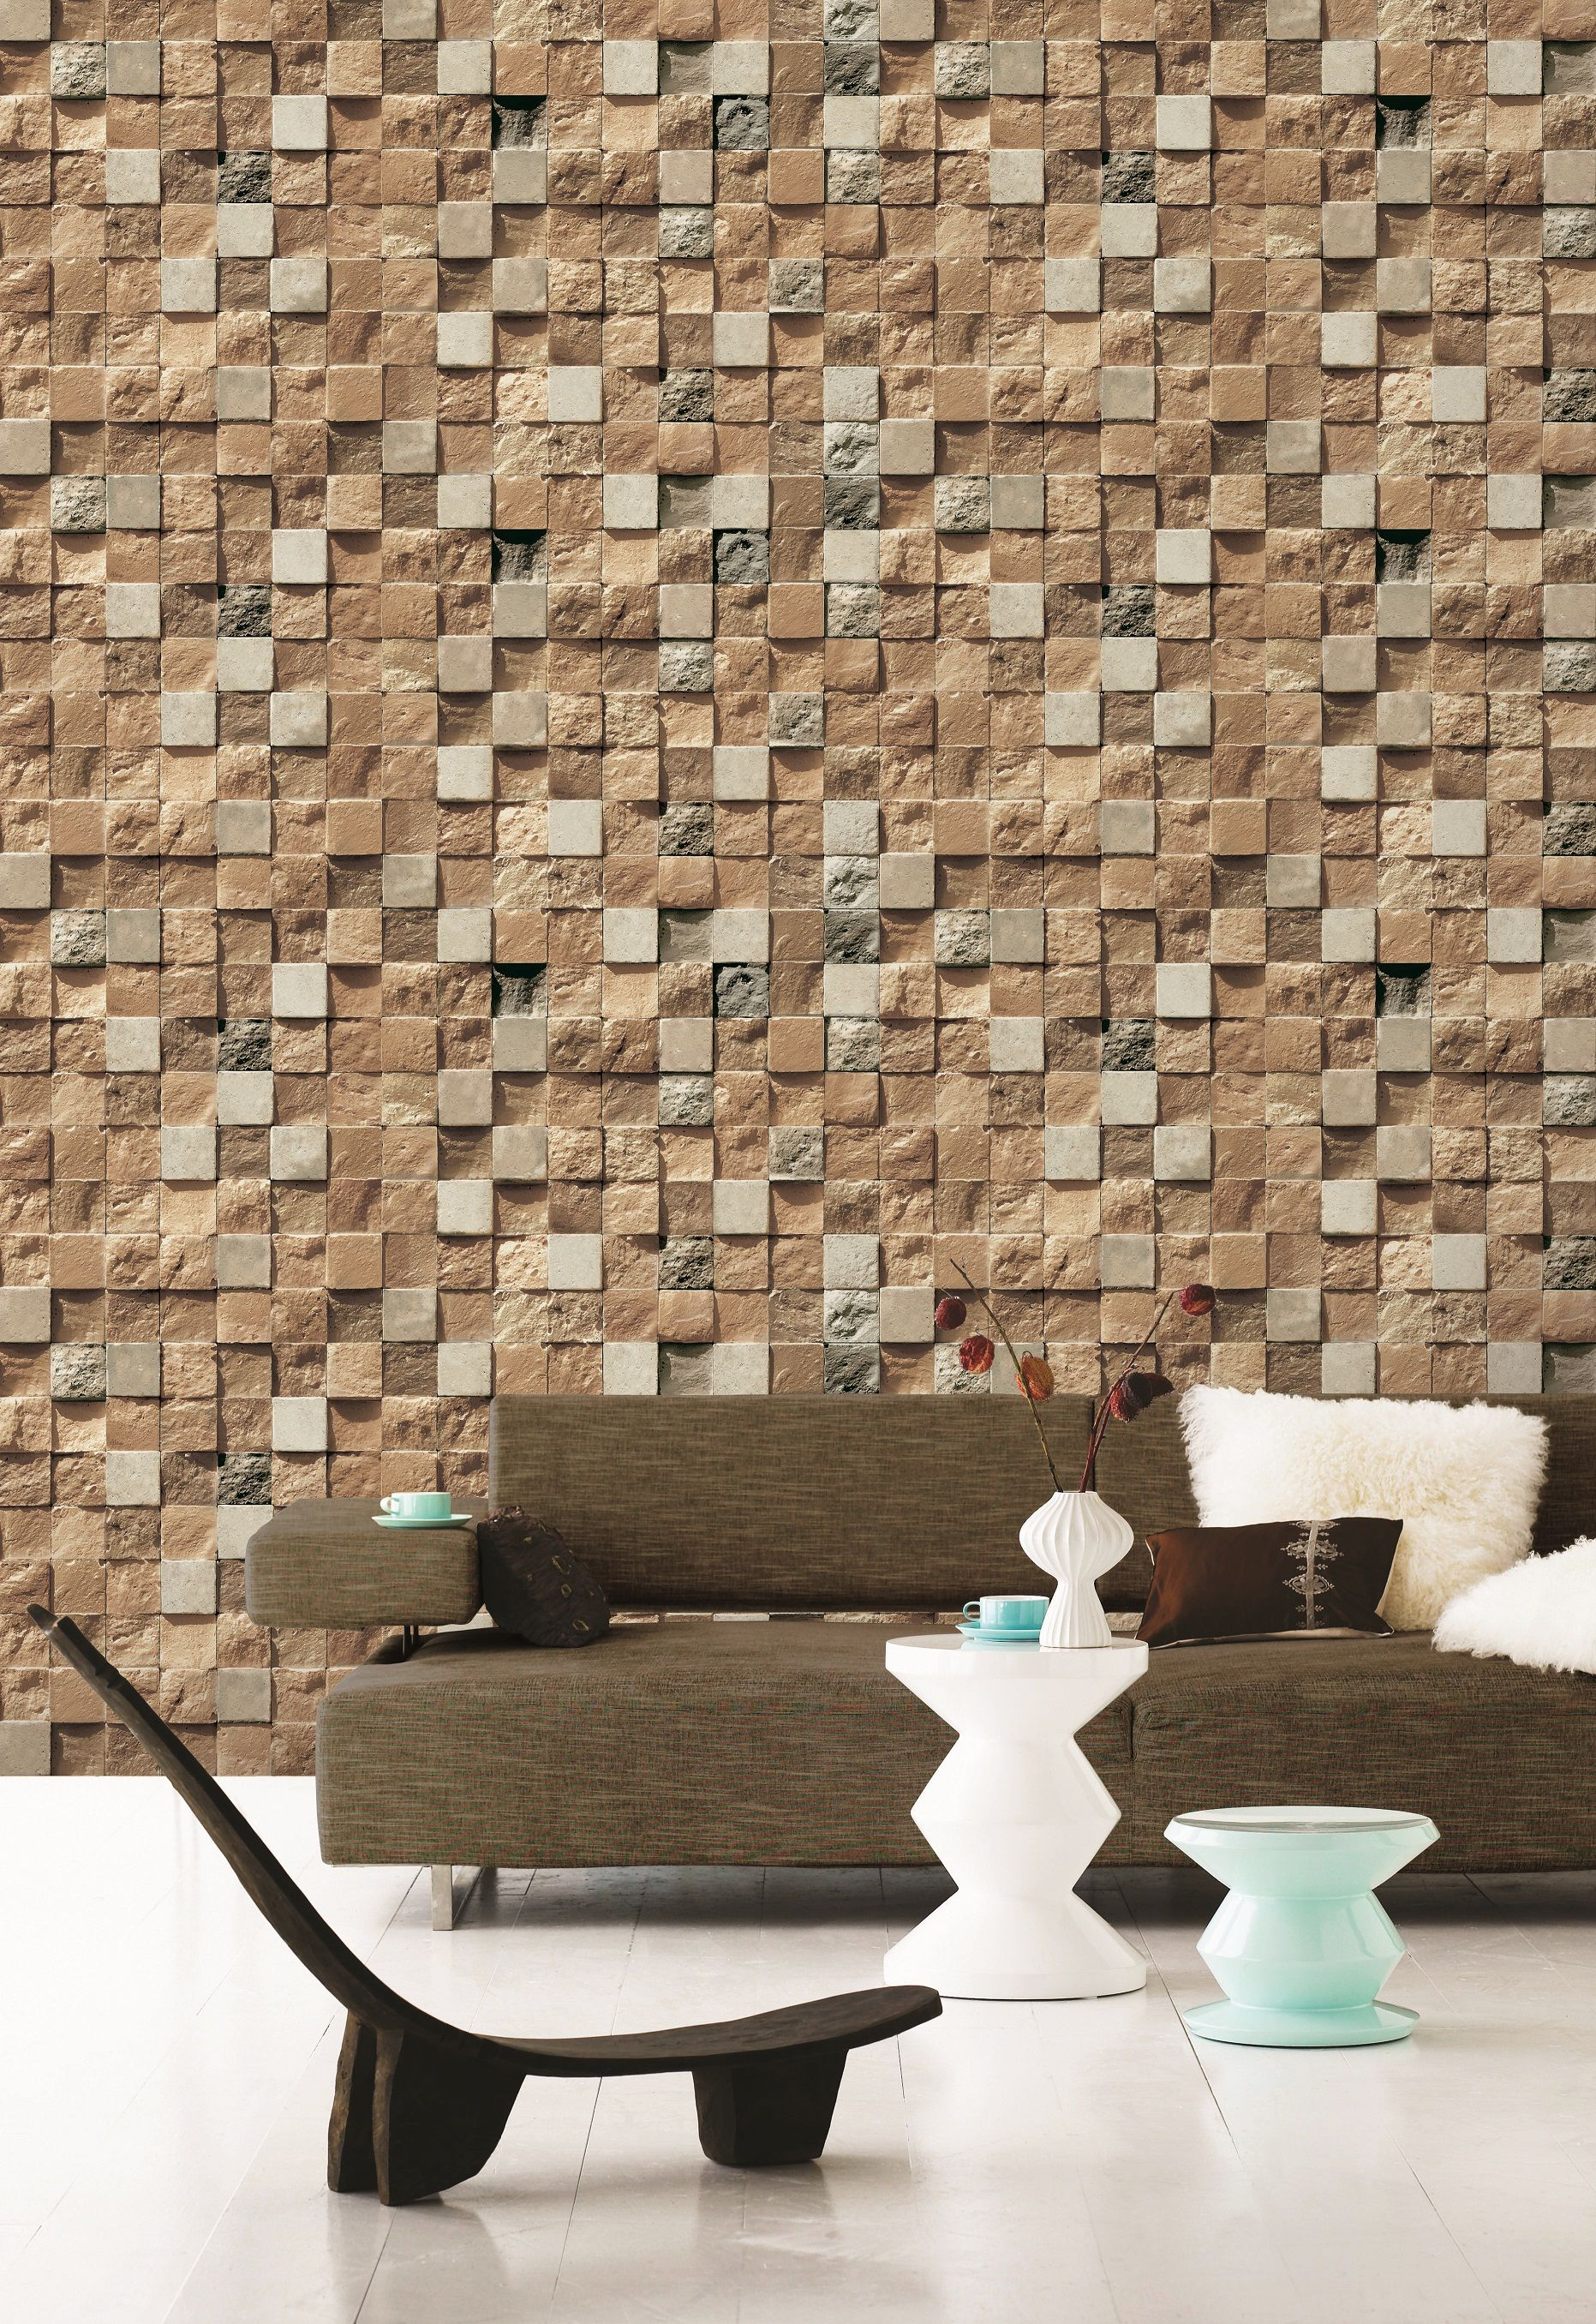 Stone Wallpaper Design For Homedecor And Office Interiors Aarceewallpapers Offers A Variety O Wallpaper House Design Wallpaper Suppliers Home Wallpaper